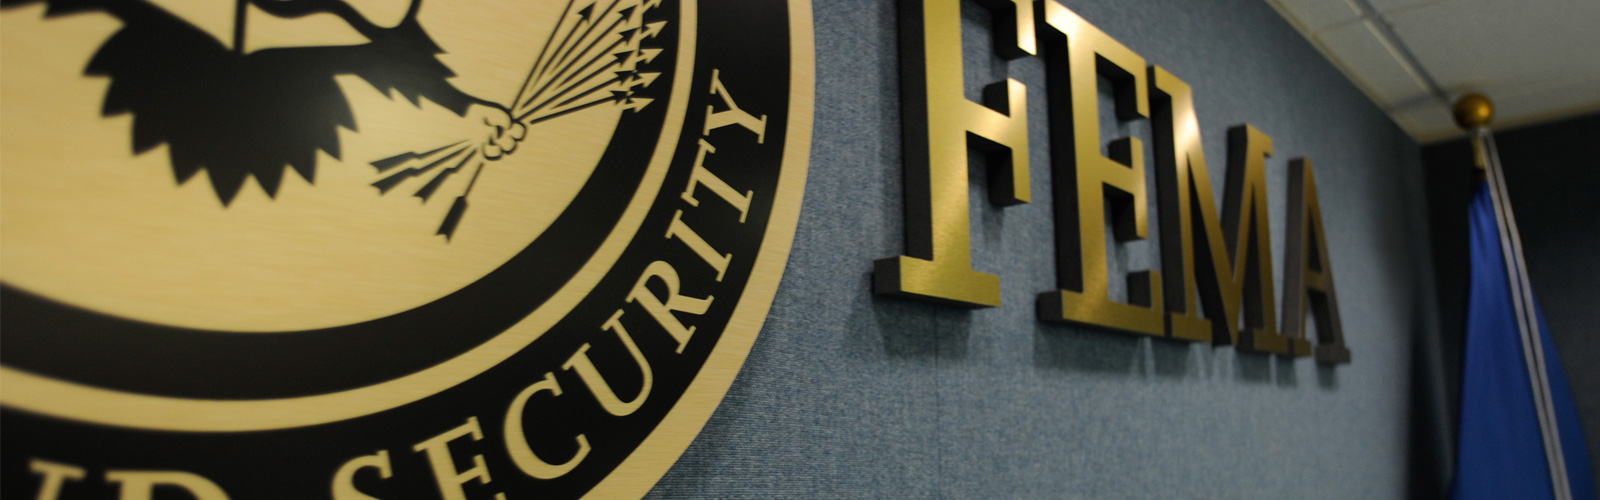 Image of FEMA crest and logotype